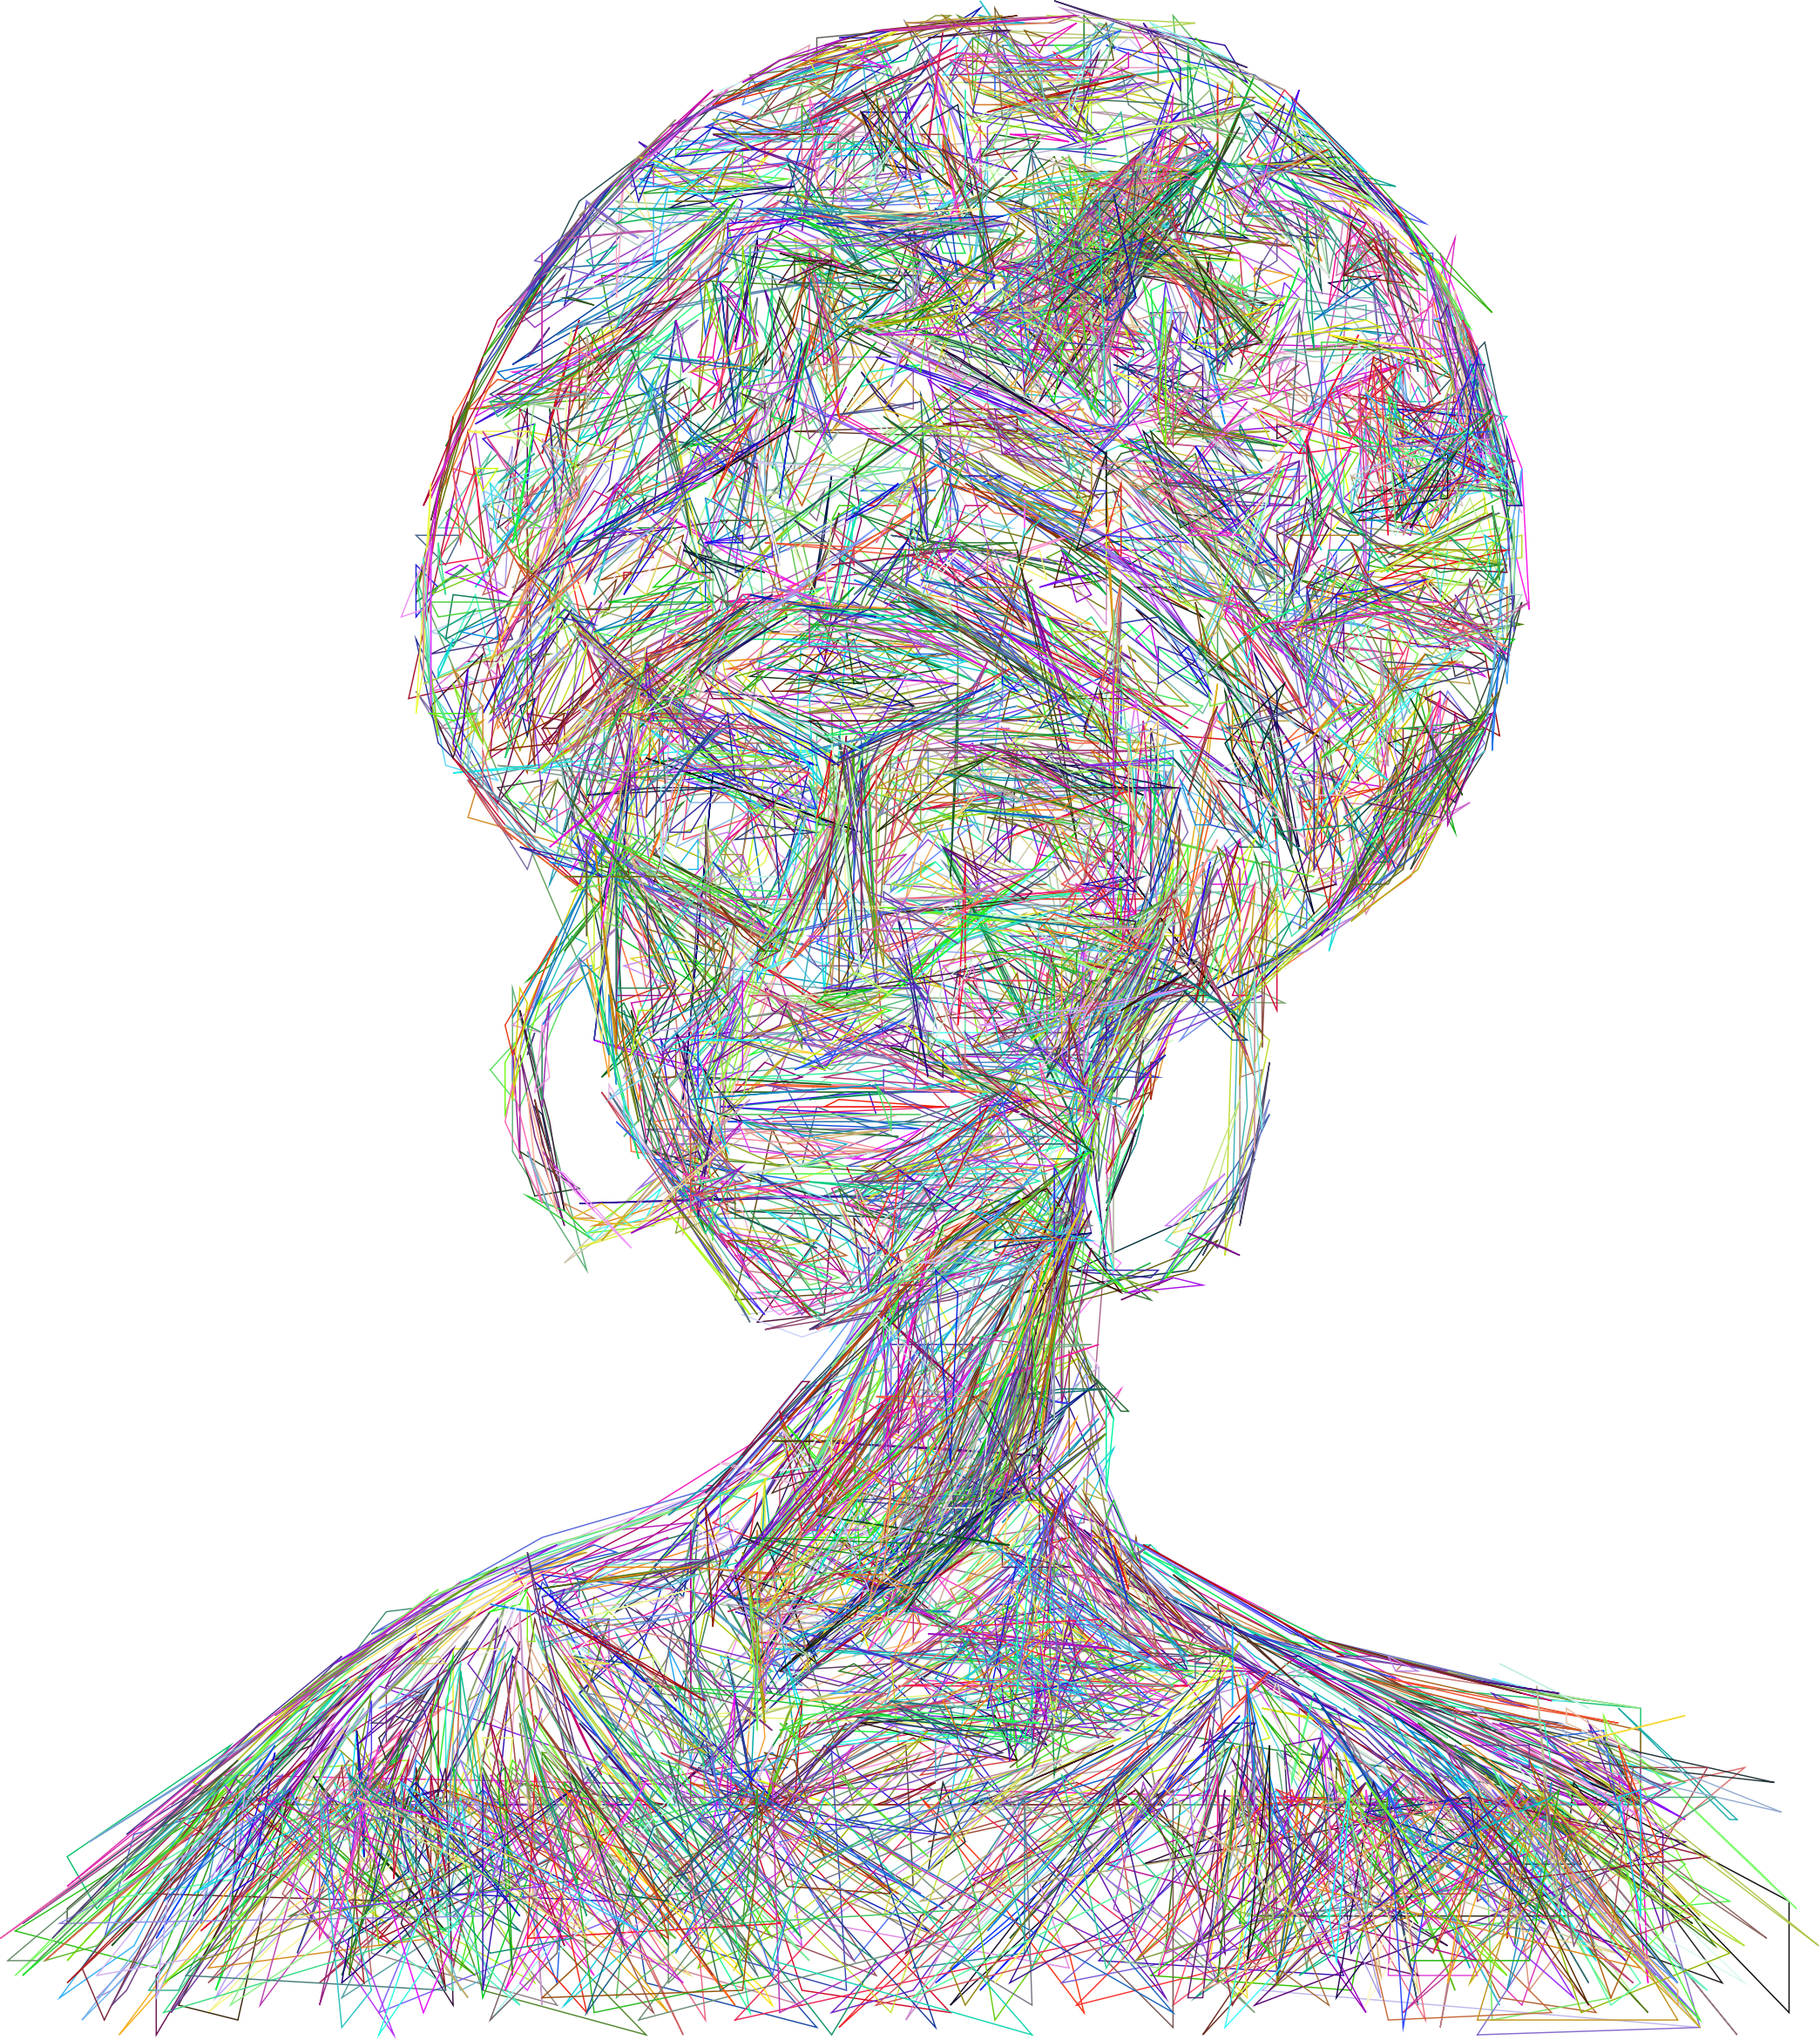 African Woman Illustration Geometric Wireframe Prismatic by GDJ